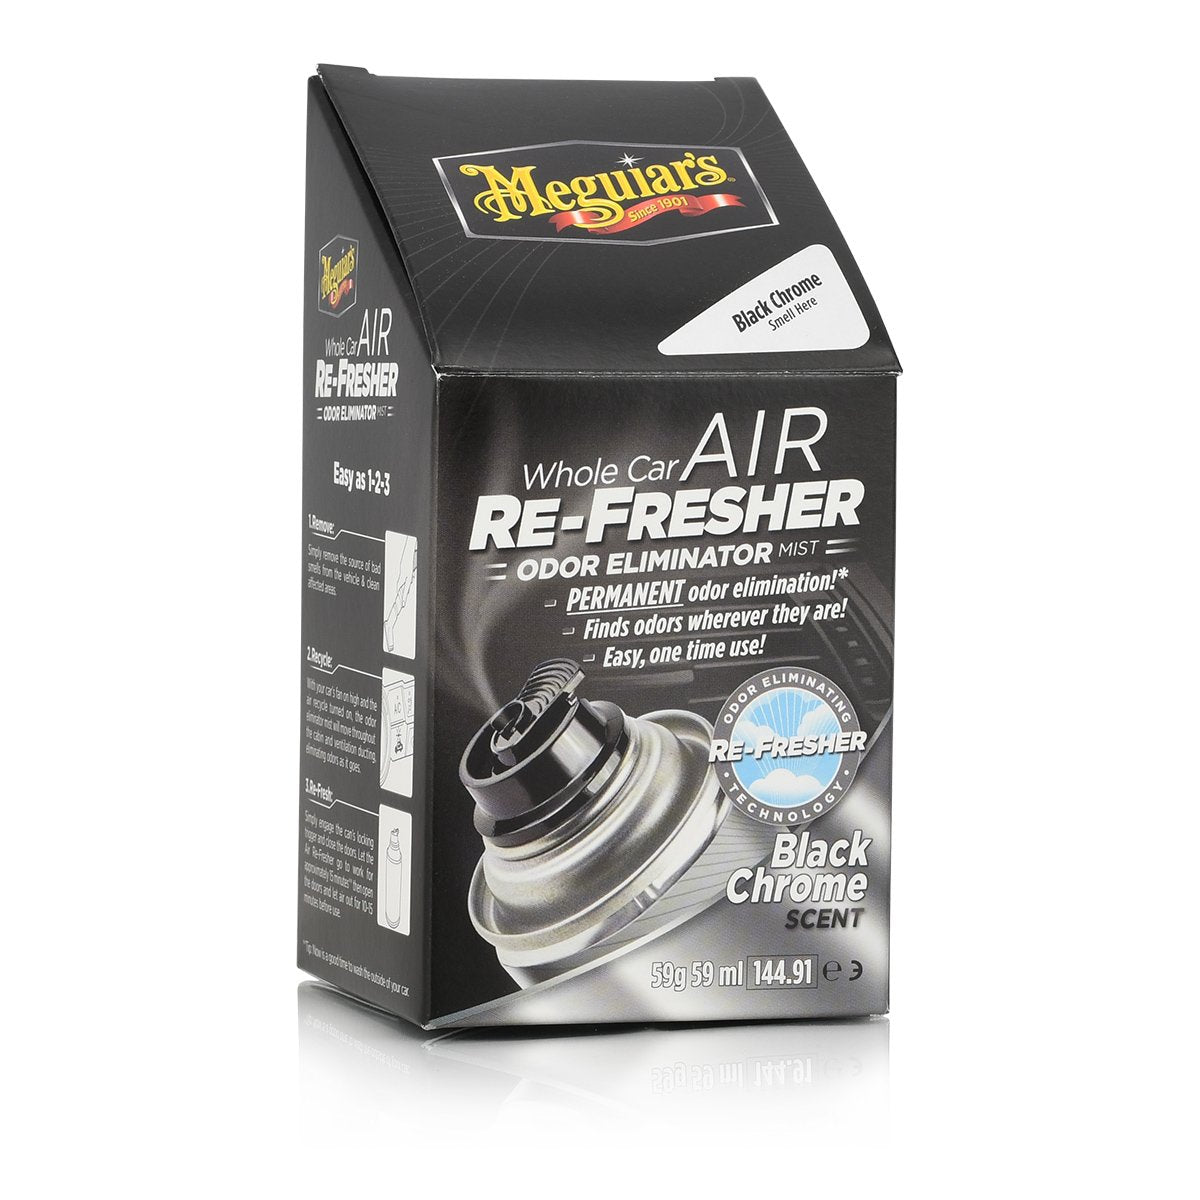 Meguiars Whole Car Air Re-Fresher Odor Eliminator Black Chrome Scent